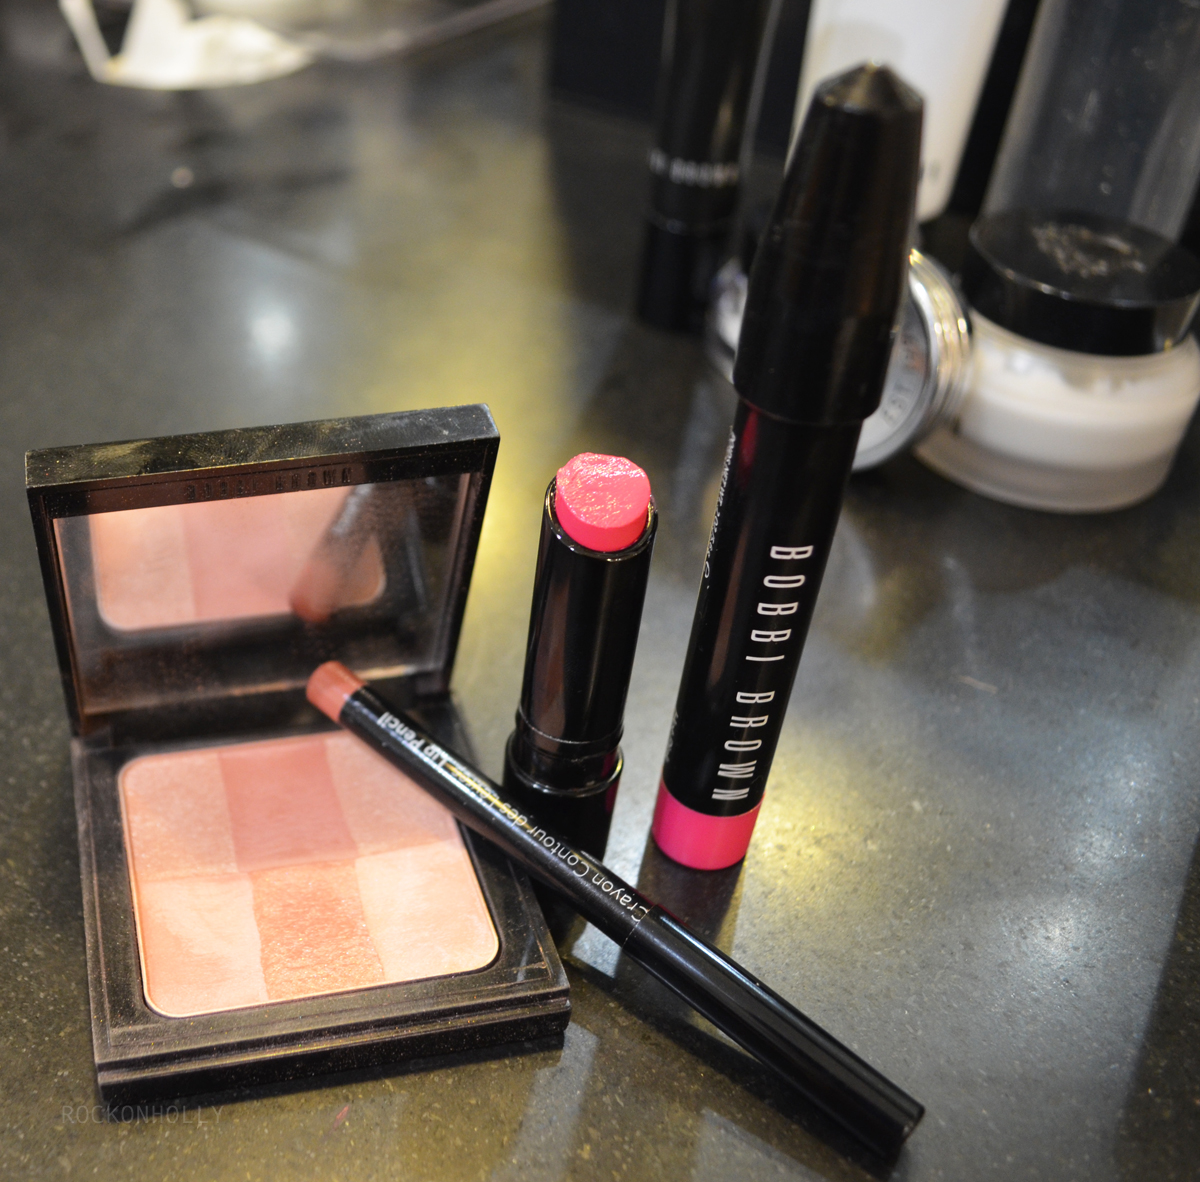 Bobbi Brown Make Up - Lipstick